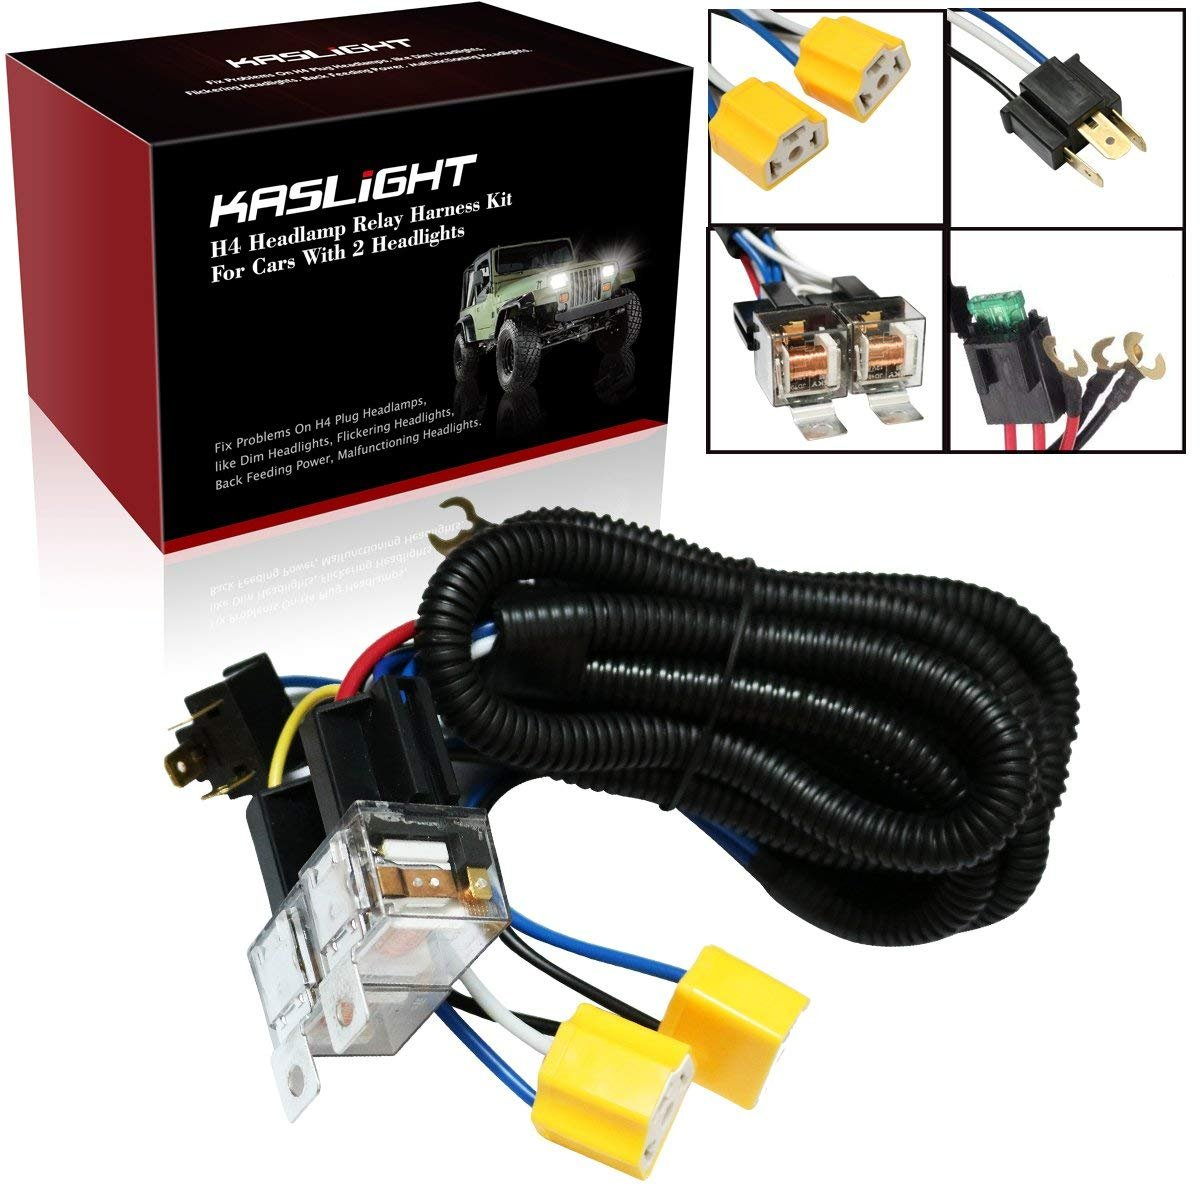 Best Rated In Automotive Replacement Switches Relays Helpful H4 Headlight Relay Wiring Diagram 1set 2 Headlights Harness H6054 1992 Toyota Pickup 7x6